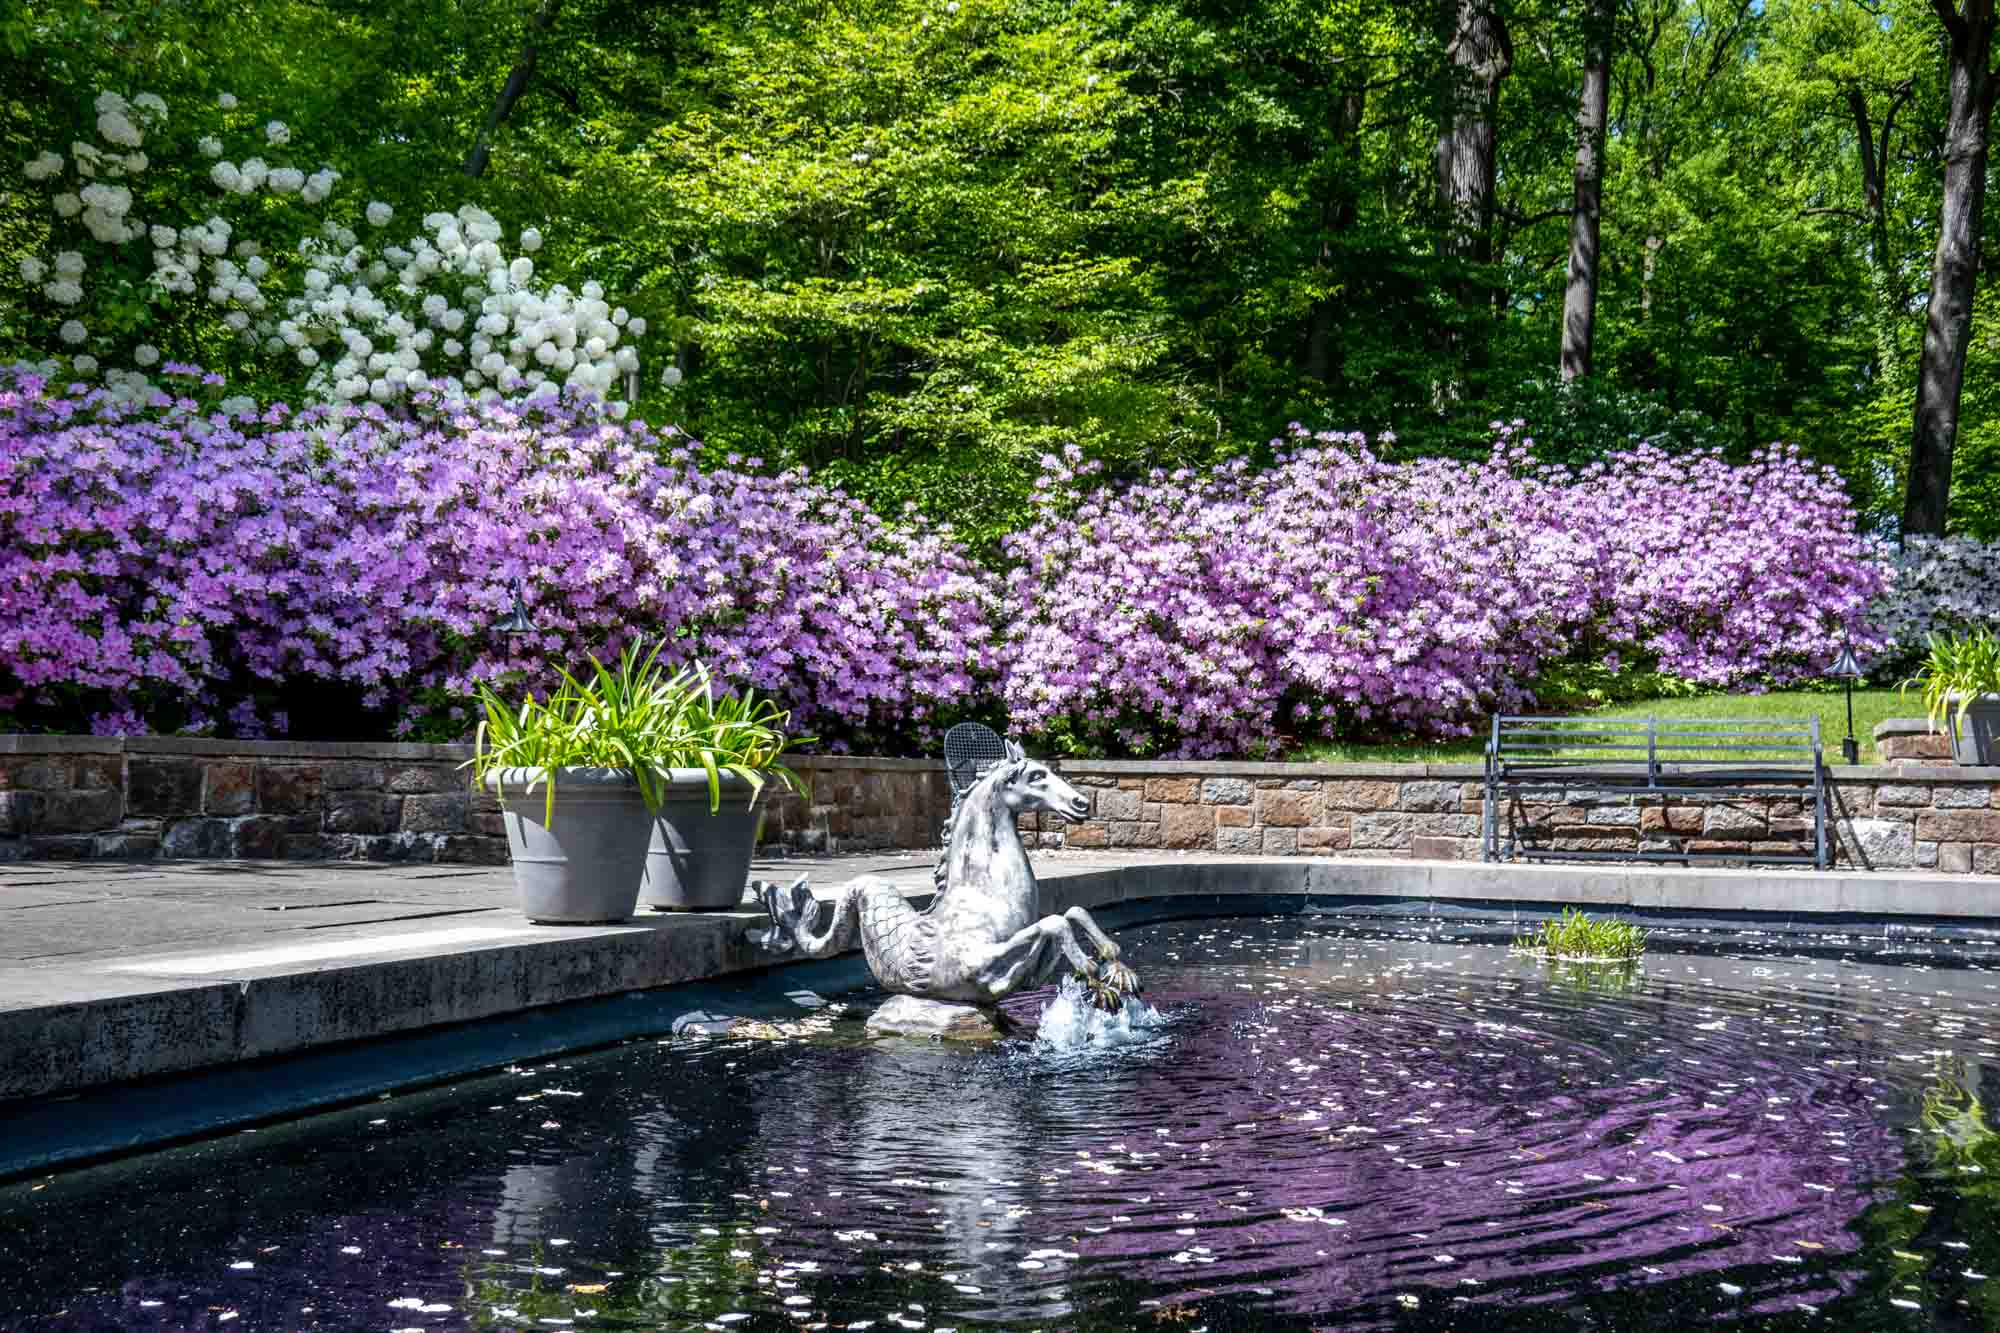 Horse sculpture beside a pool surrounded by a purple flowering plant